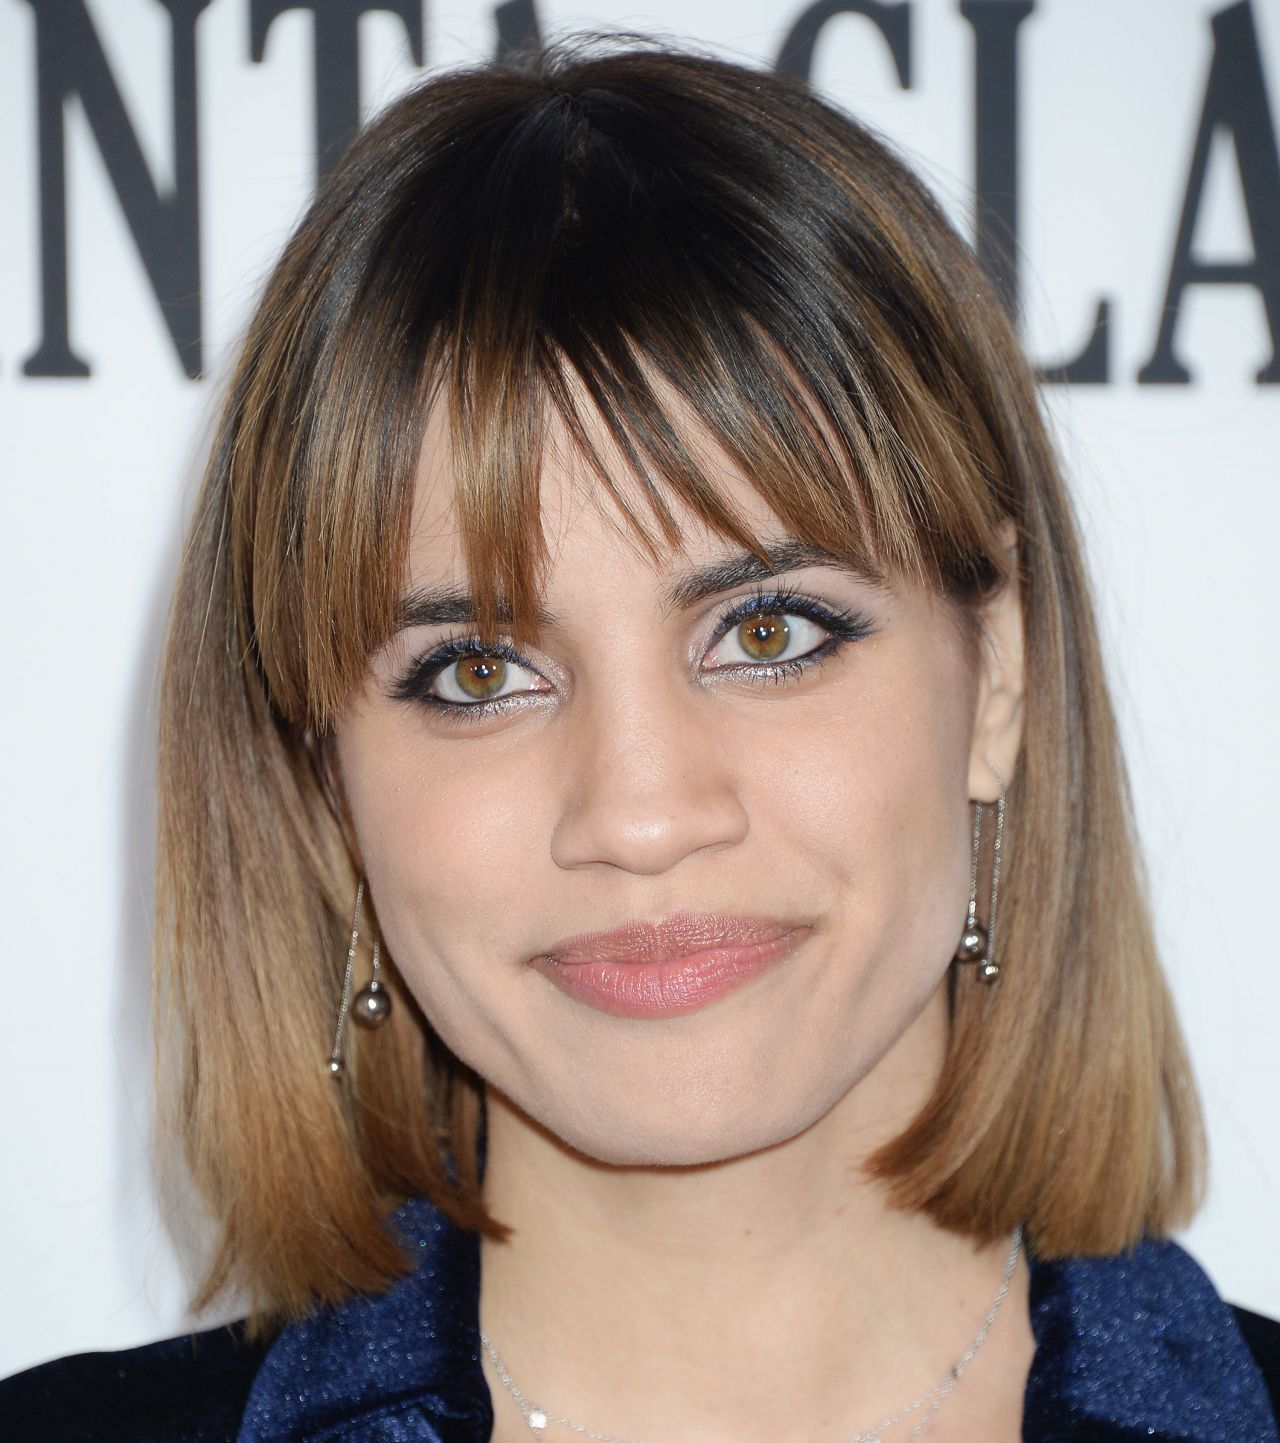 actress natalie morales attended the premiere of the